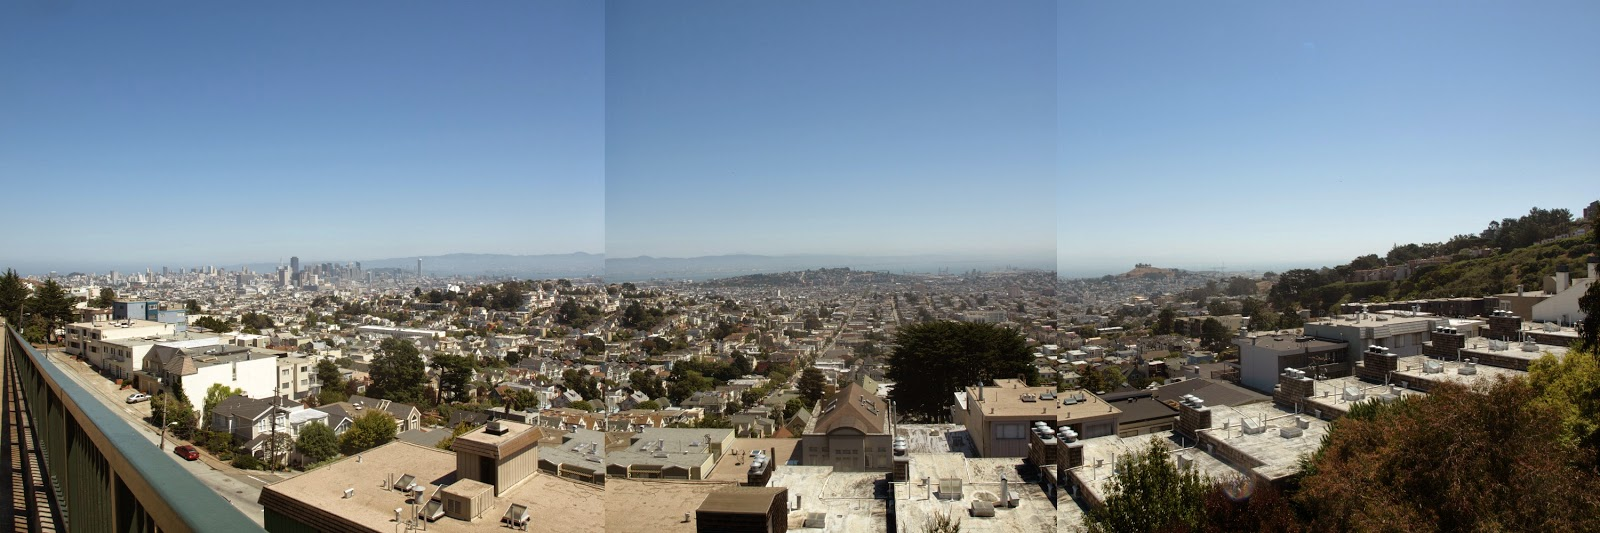 Panorama from the top of Twin Peaks